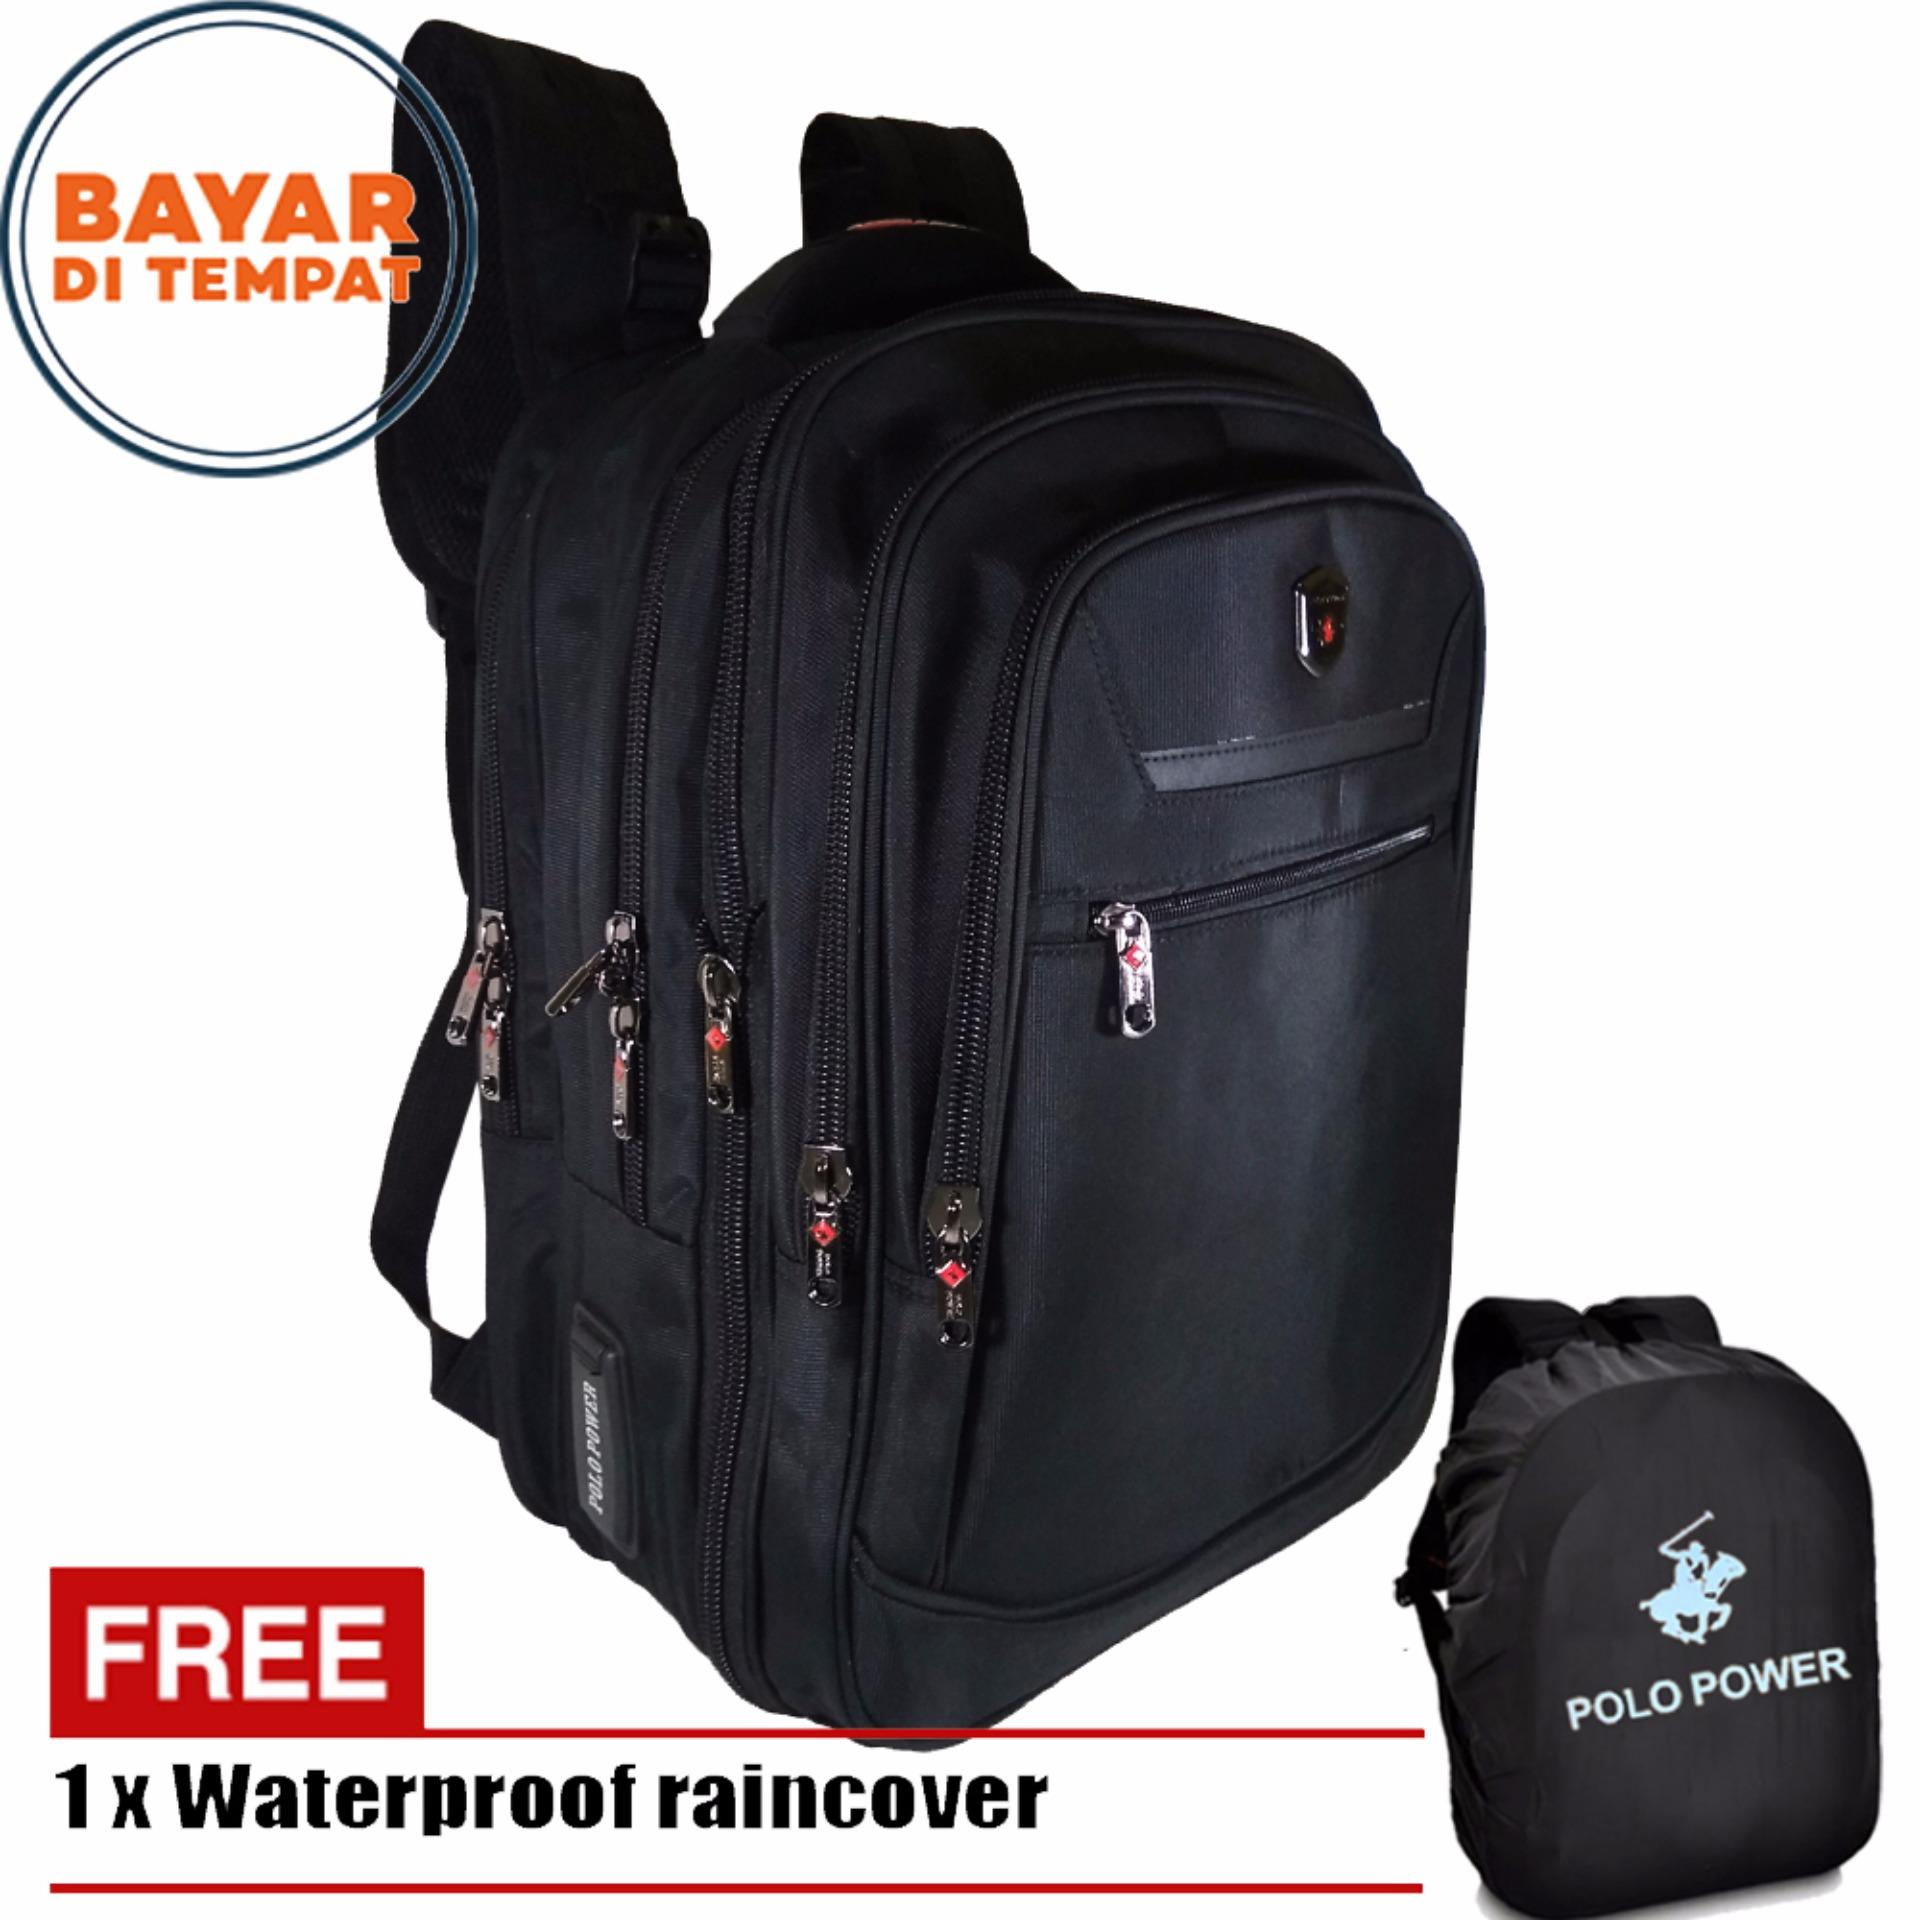 Harga Polo Power Tas Ransel Pria 18 Inchi Expandable 185003 Highest Spec Polo Backpack Import Original Black Raincover Polo Power Baru